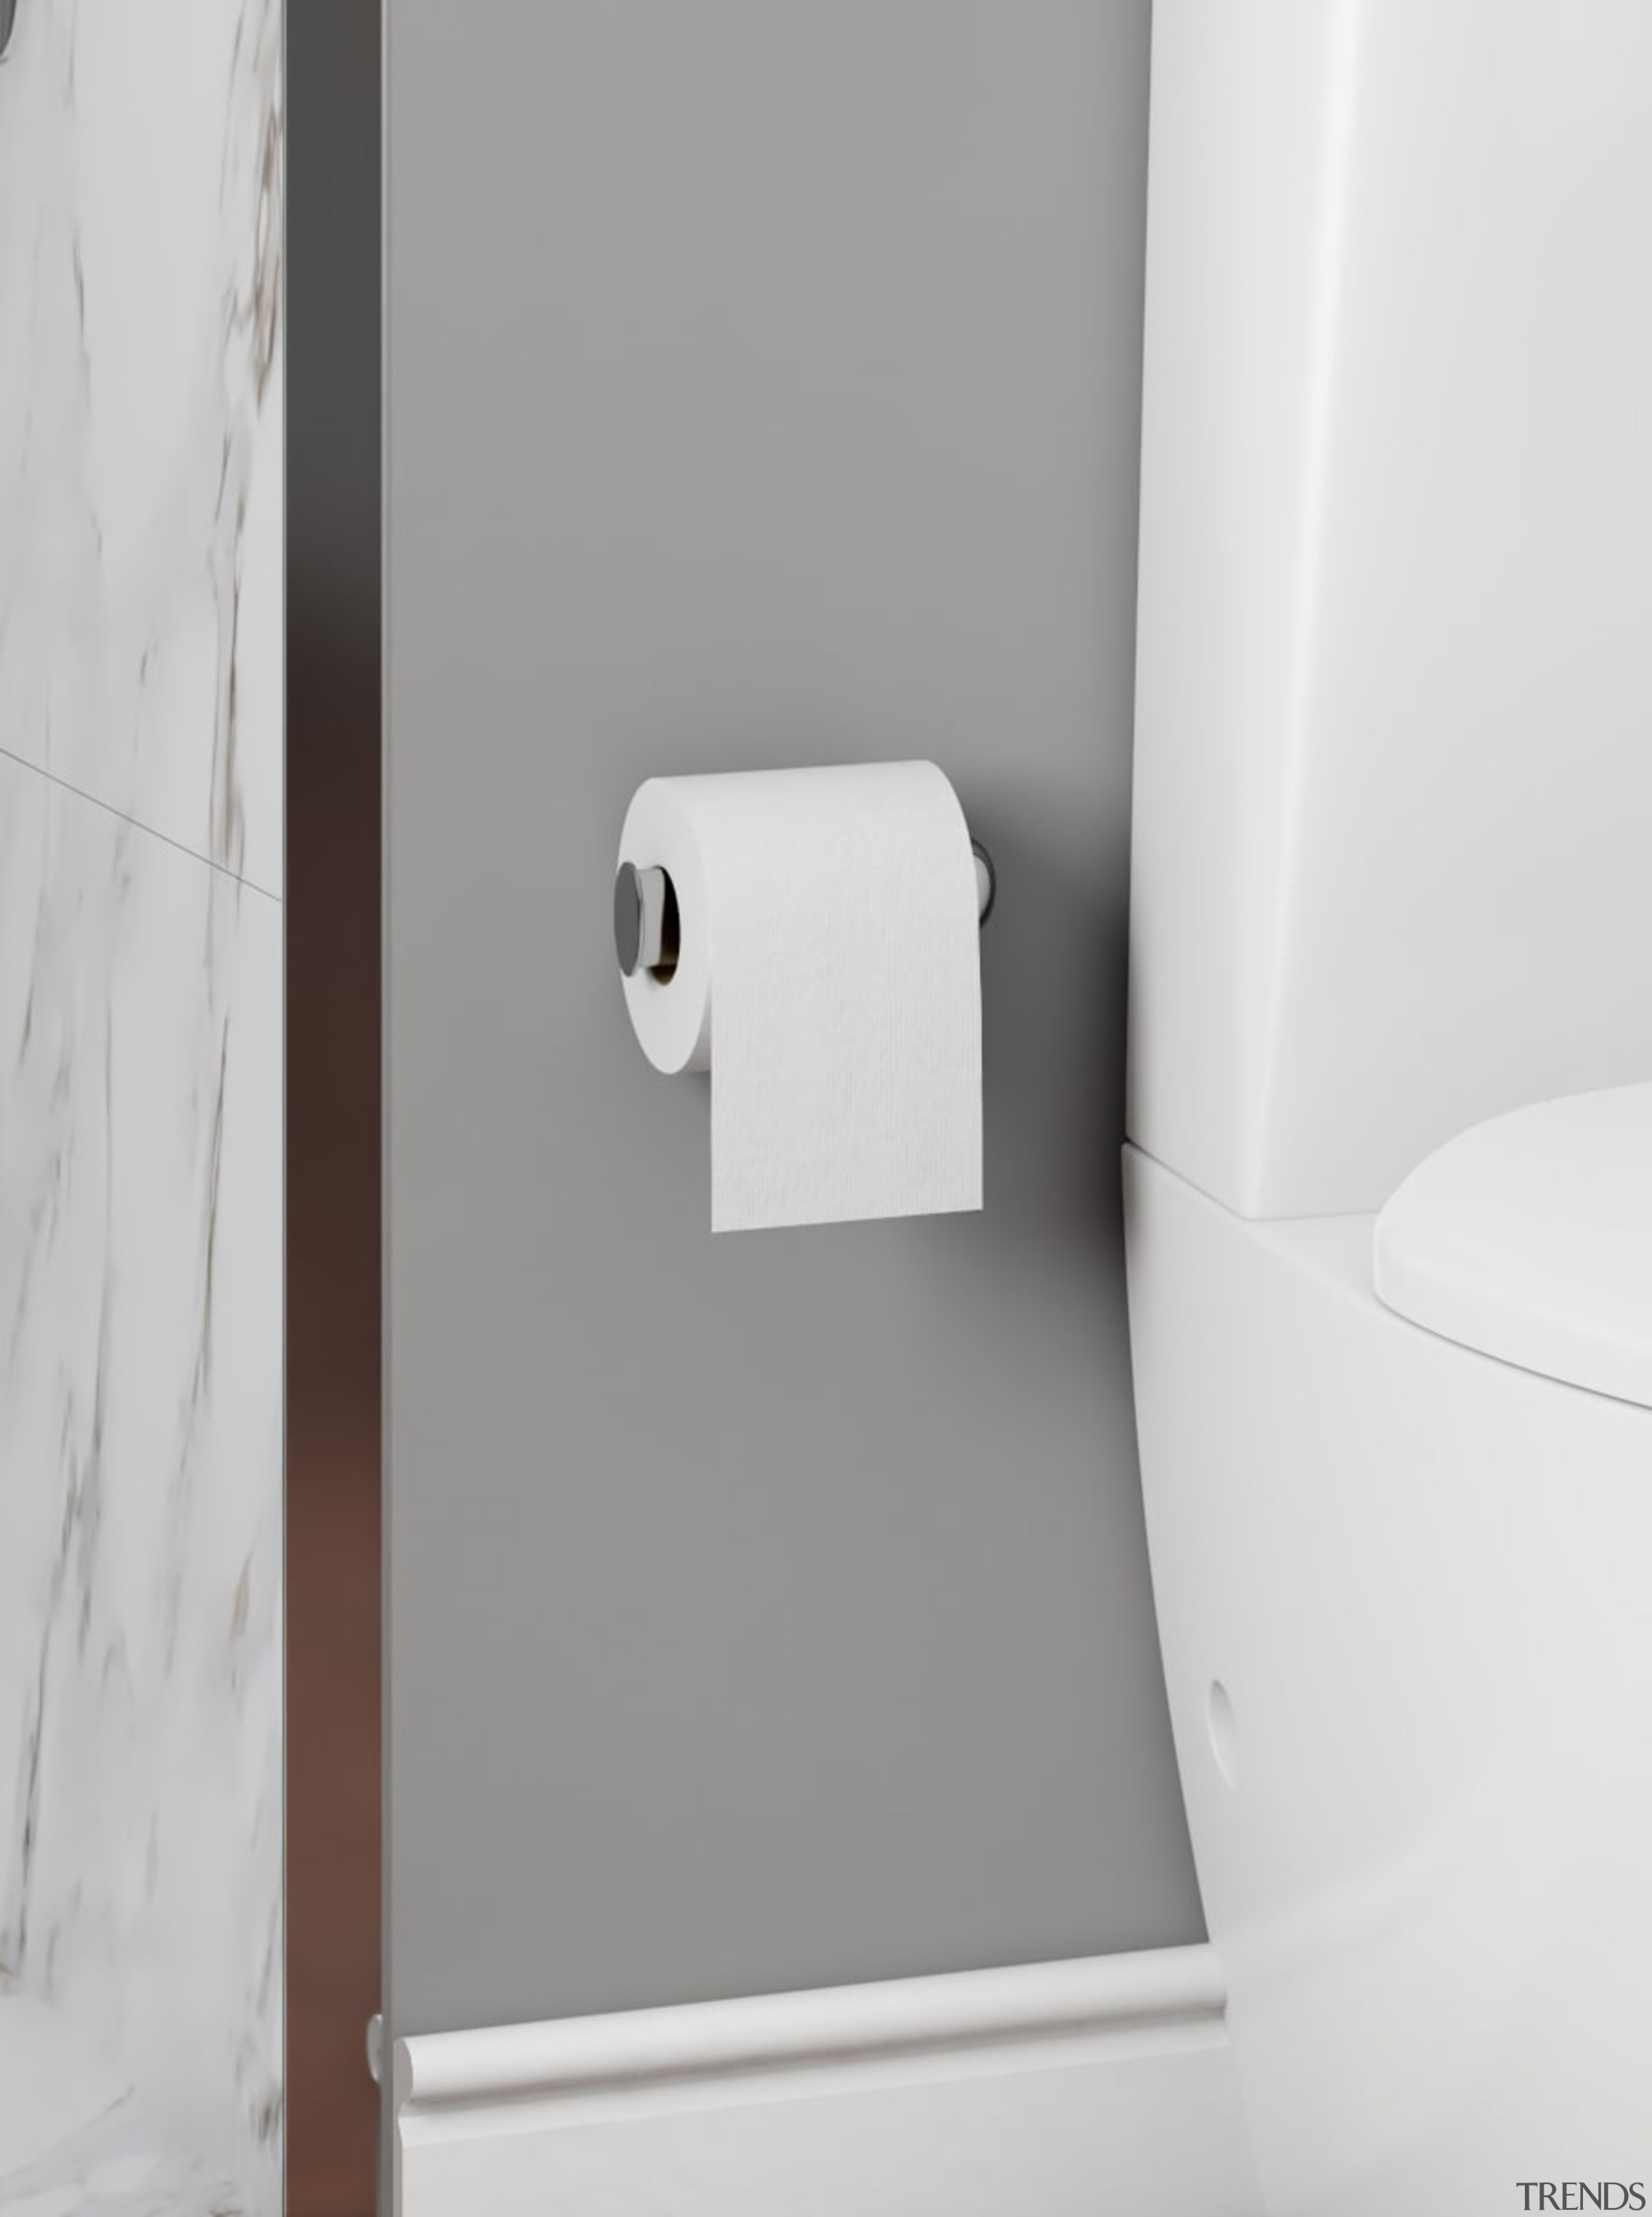 Toto Le Muse Roll Holder | Trends